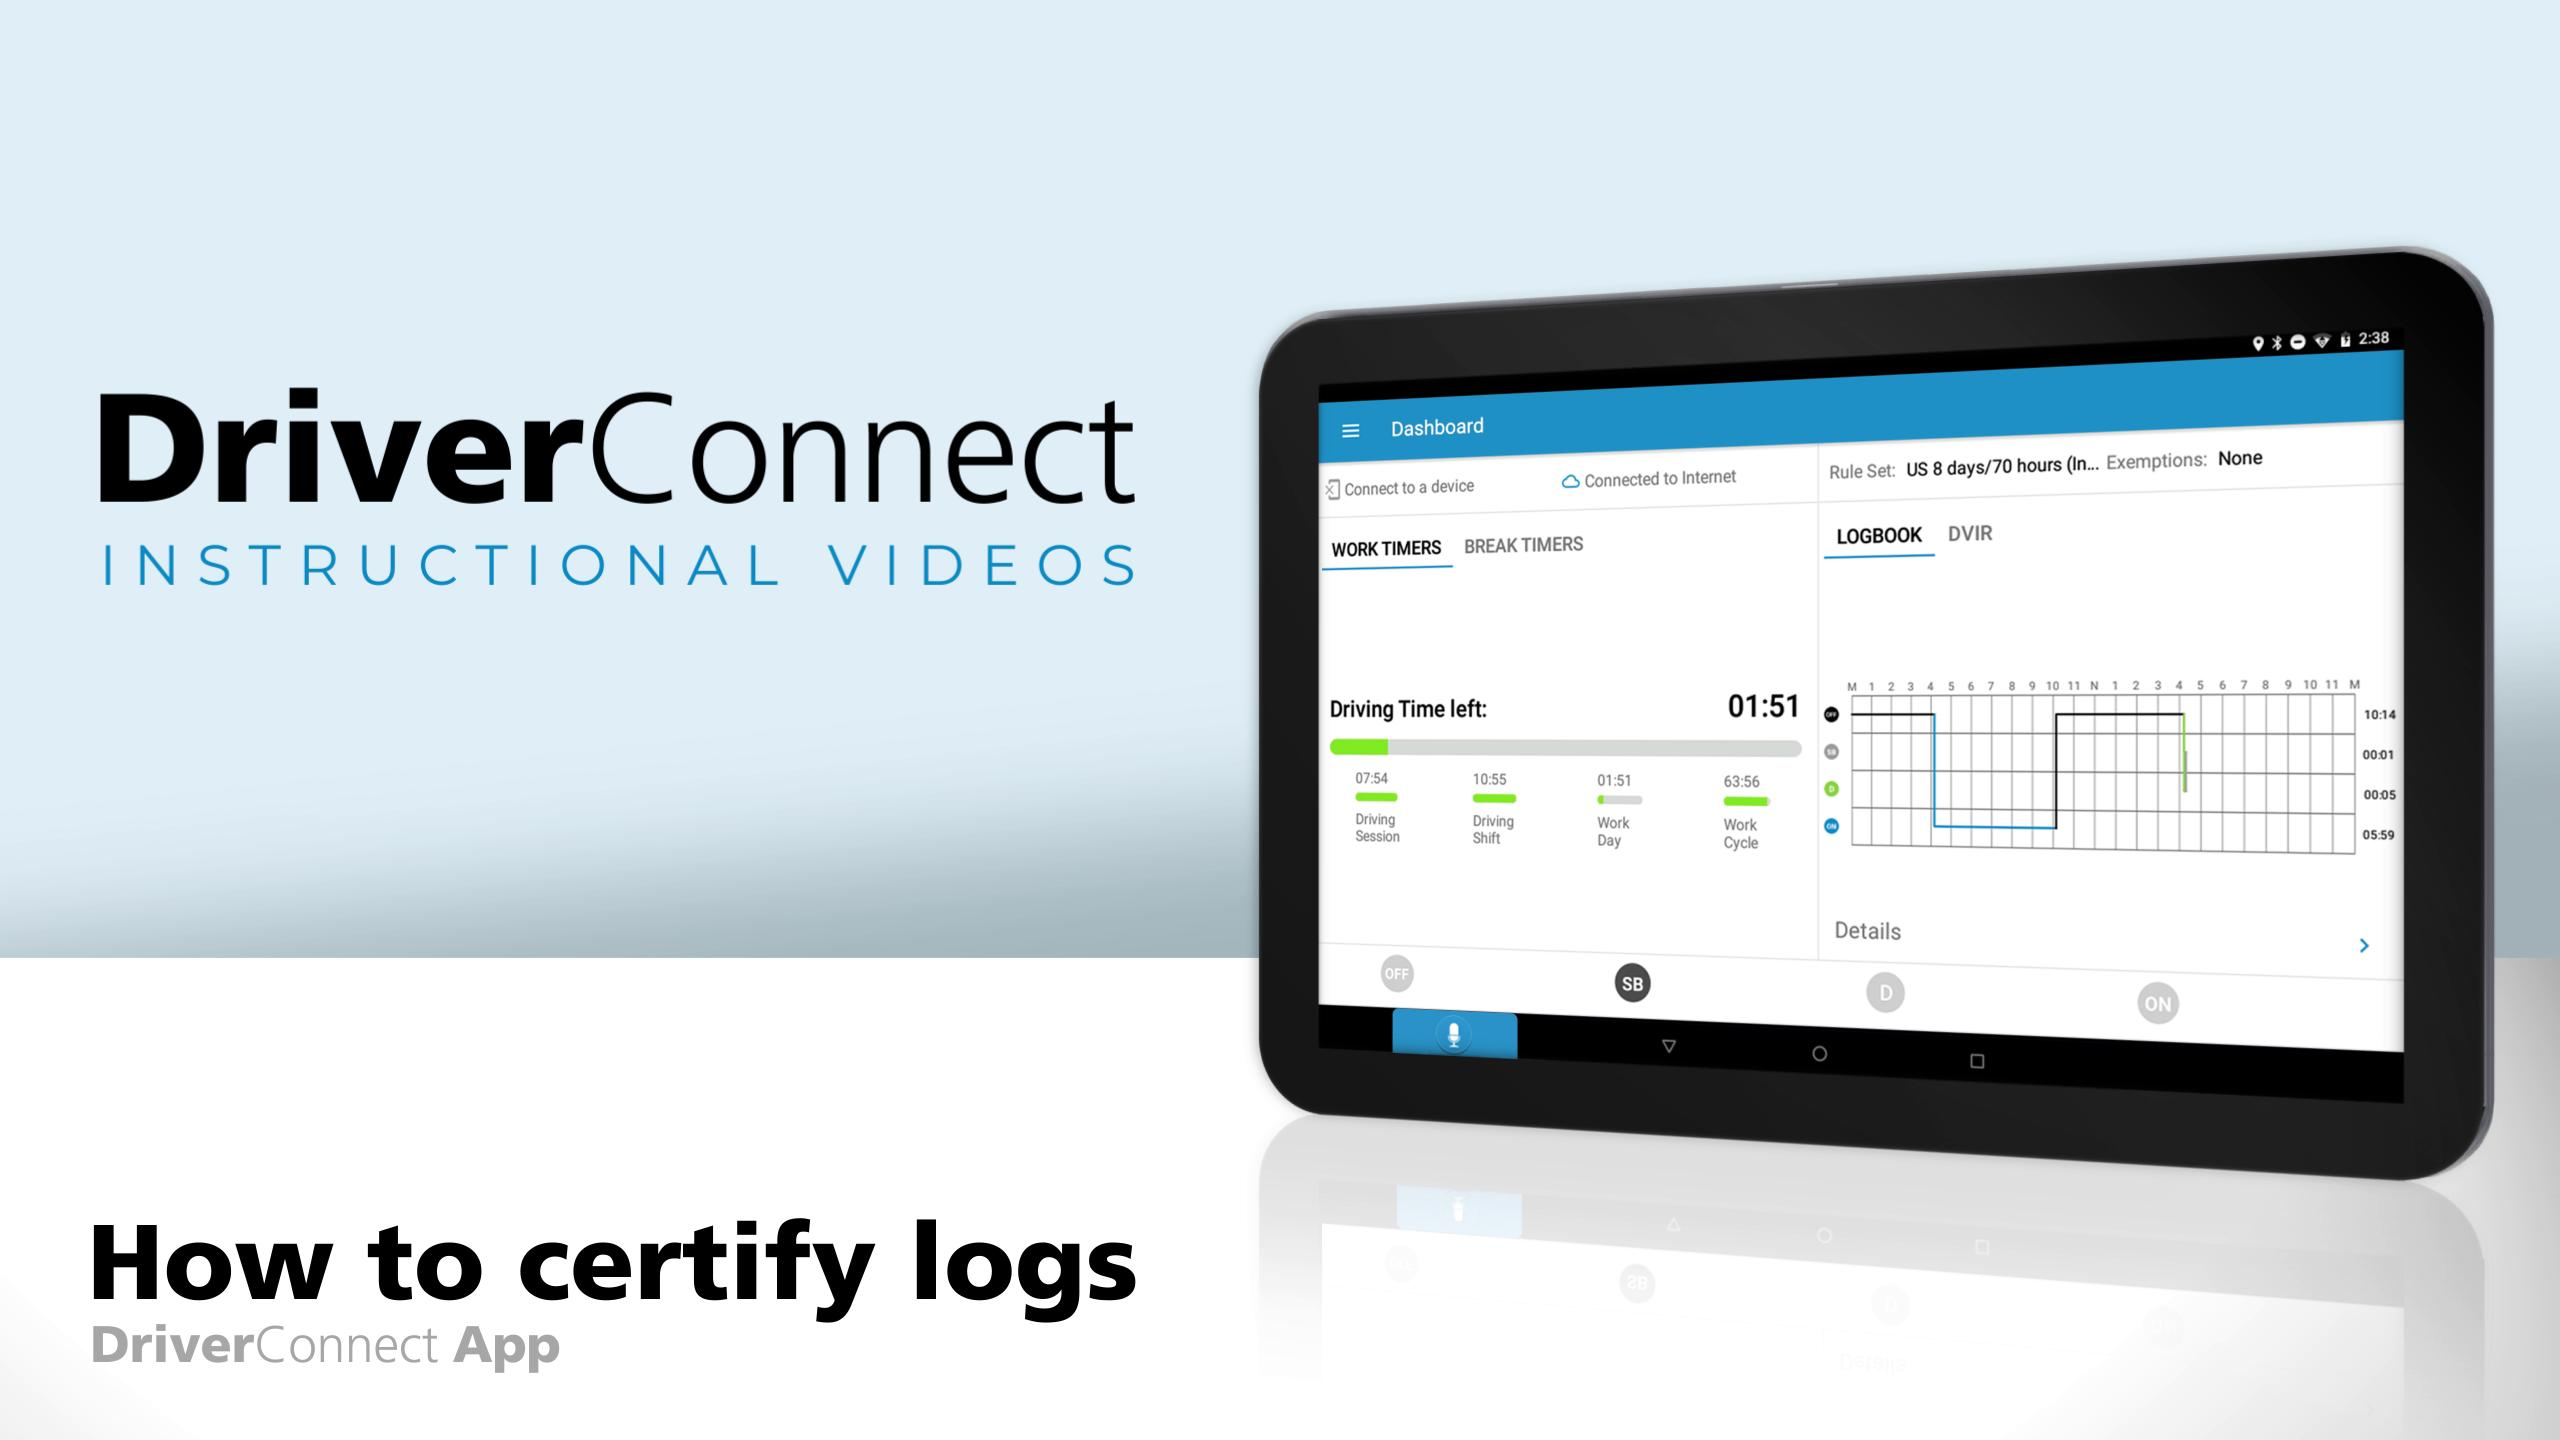 DC App Tutorial How to Certify Logs